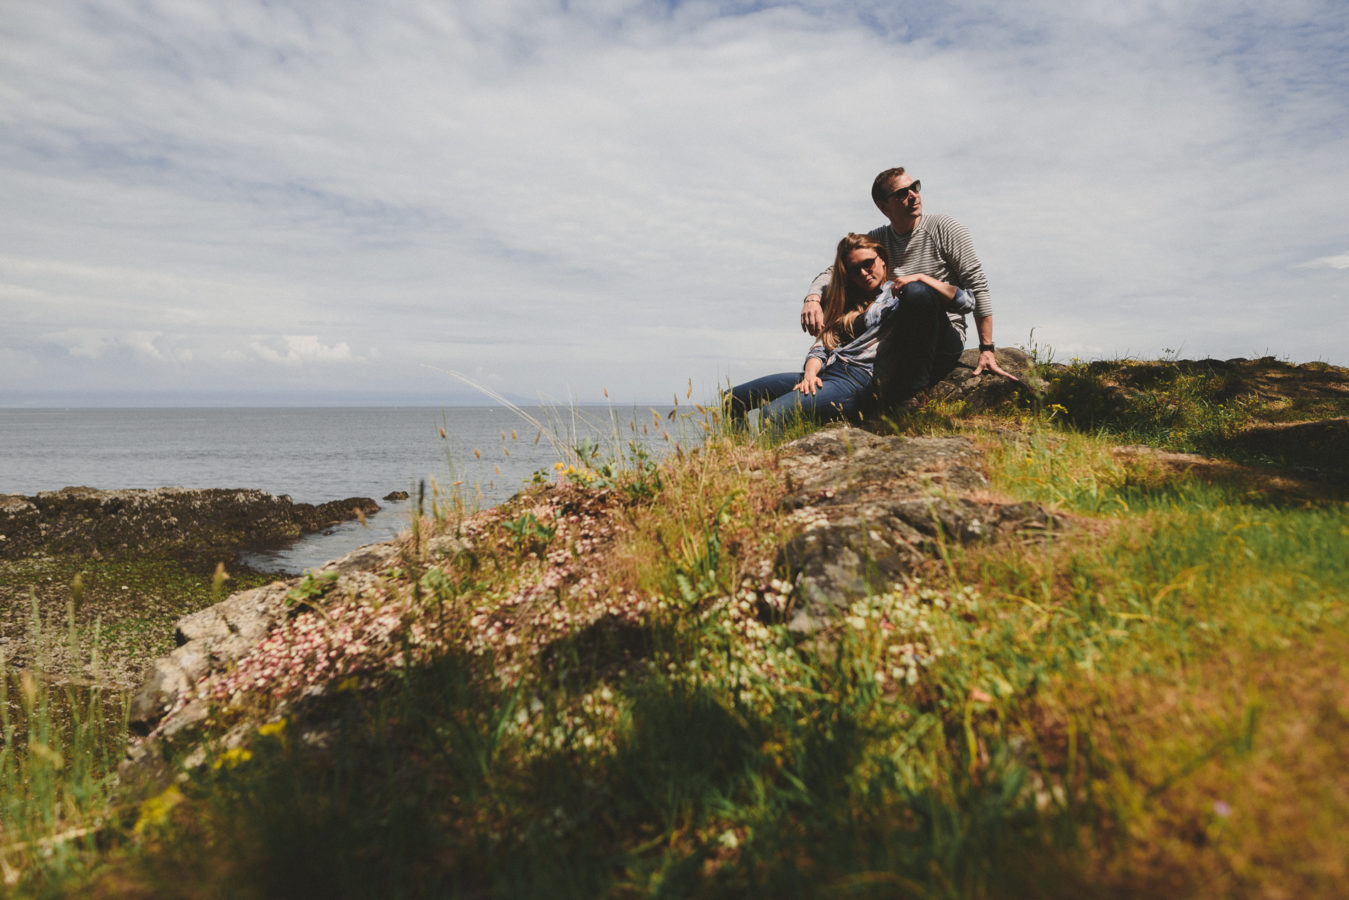 man and woman sitting and snuggling on a rocky bluff overlooking the ocean